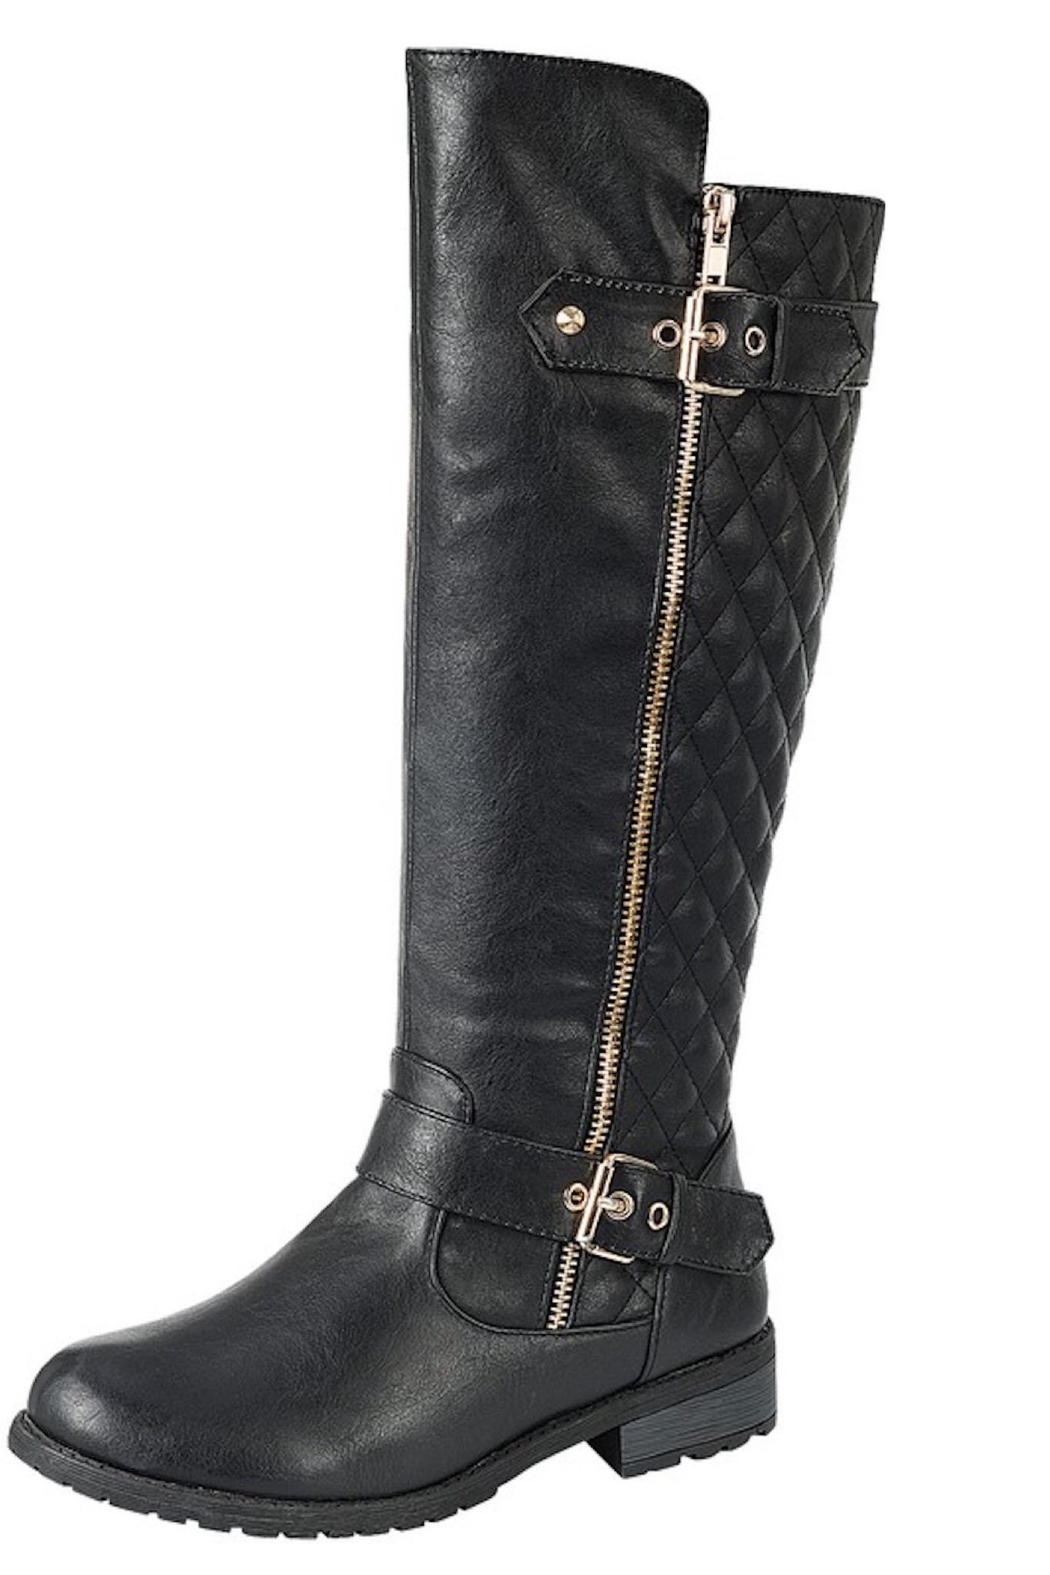 Forever Quilted Black Boots - Main Image